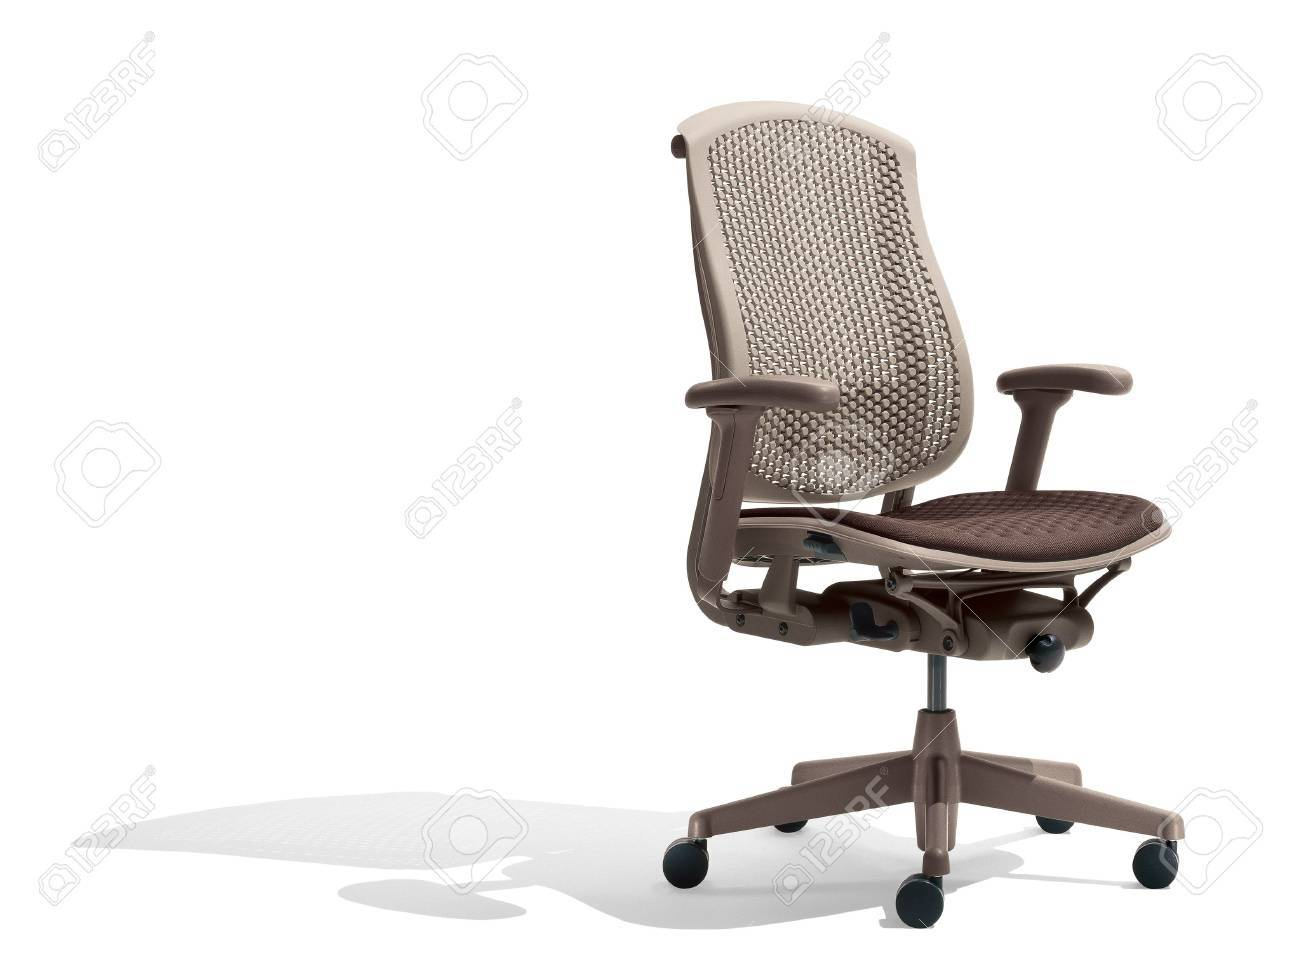 stylish office chair Stock Photo - 5110680